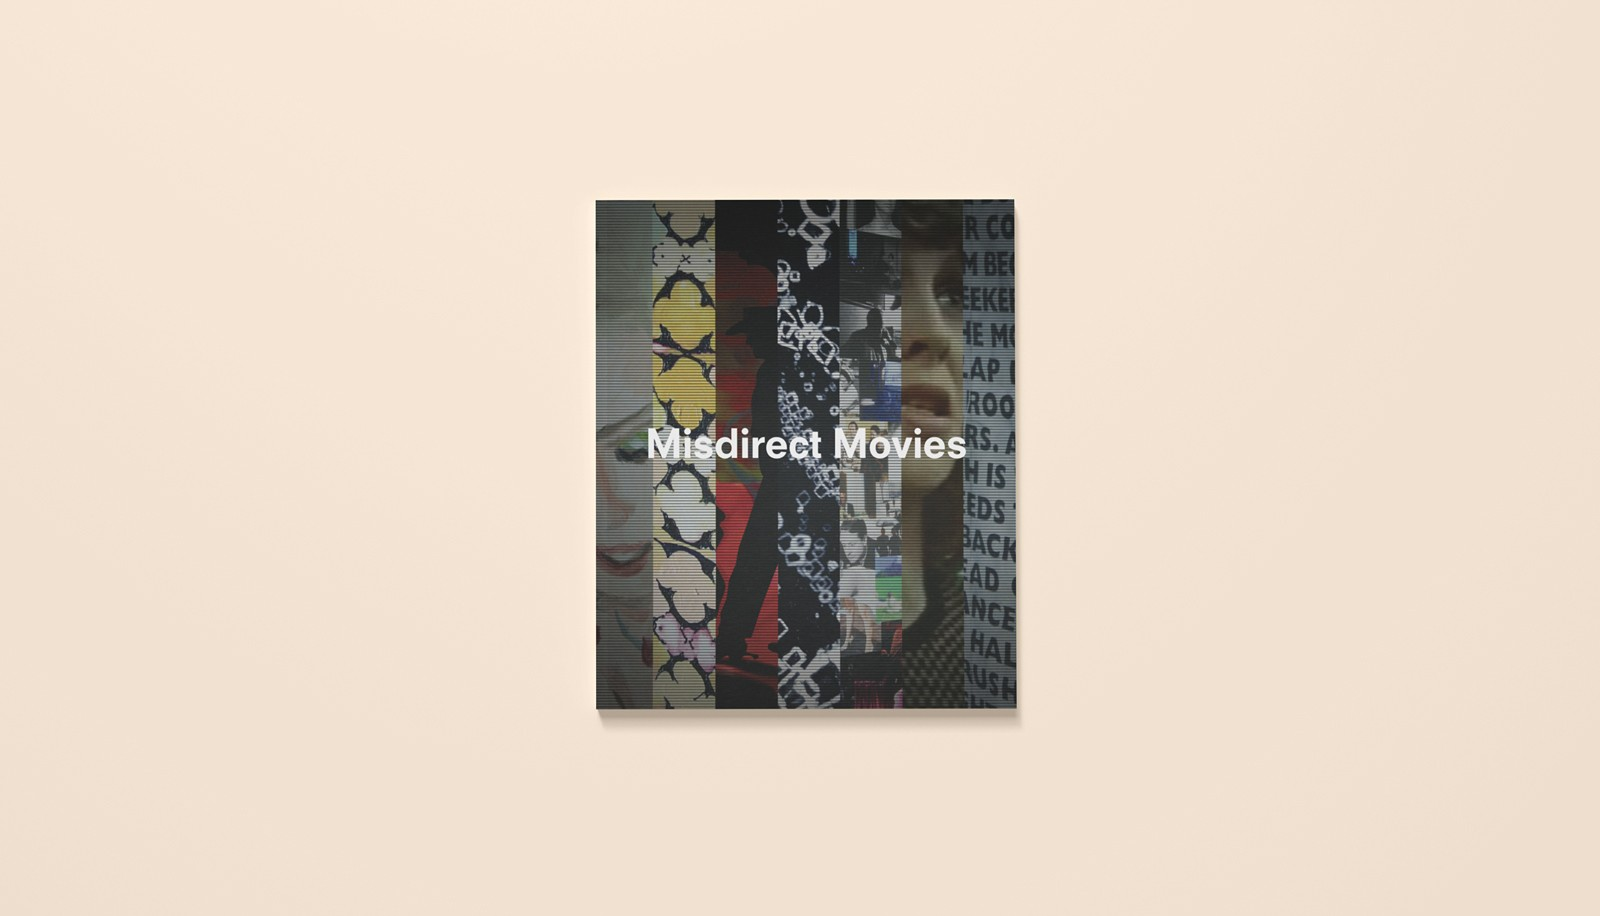 Exhibition publication: Misdirect Movies